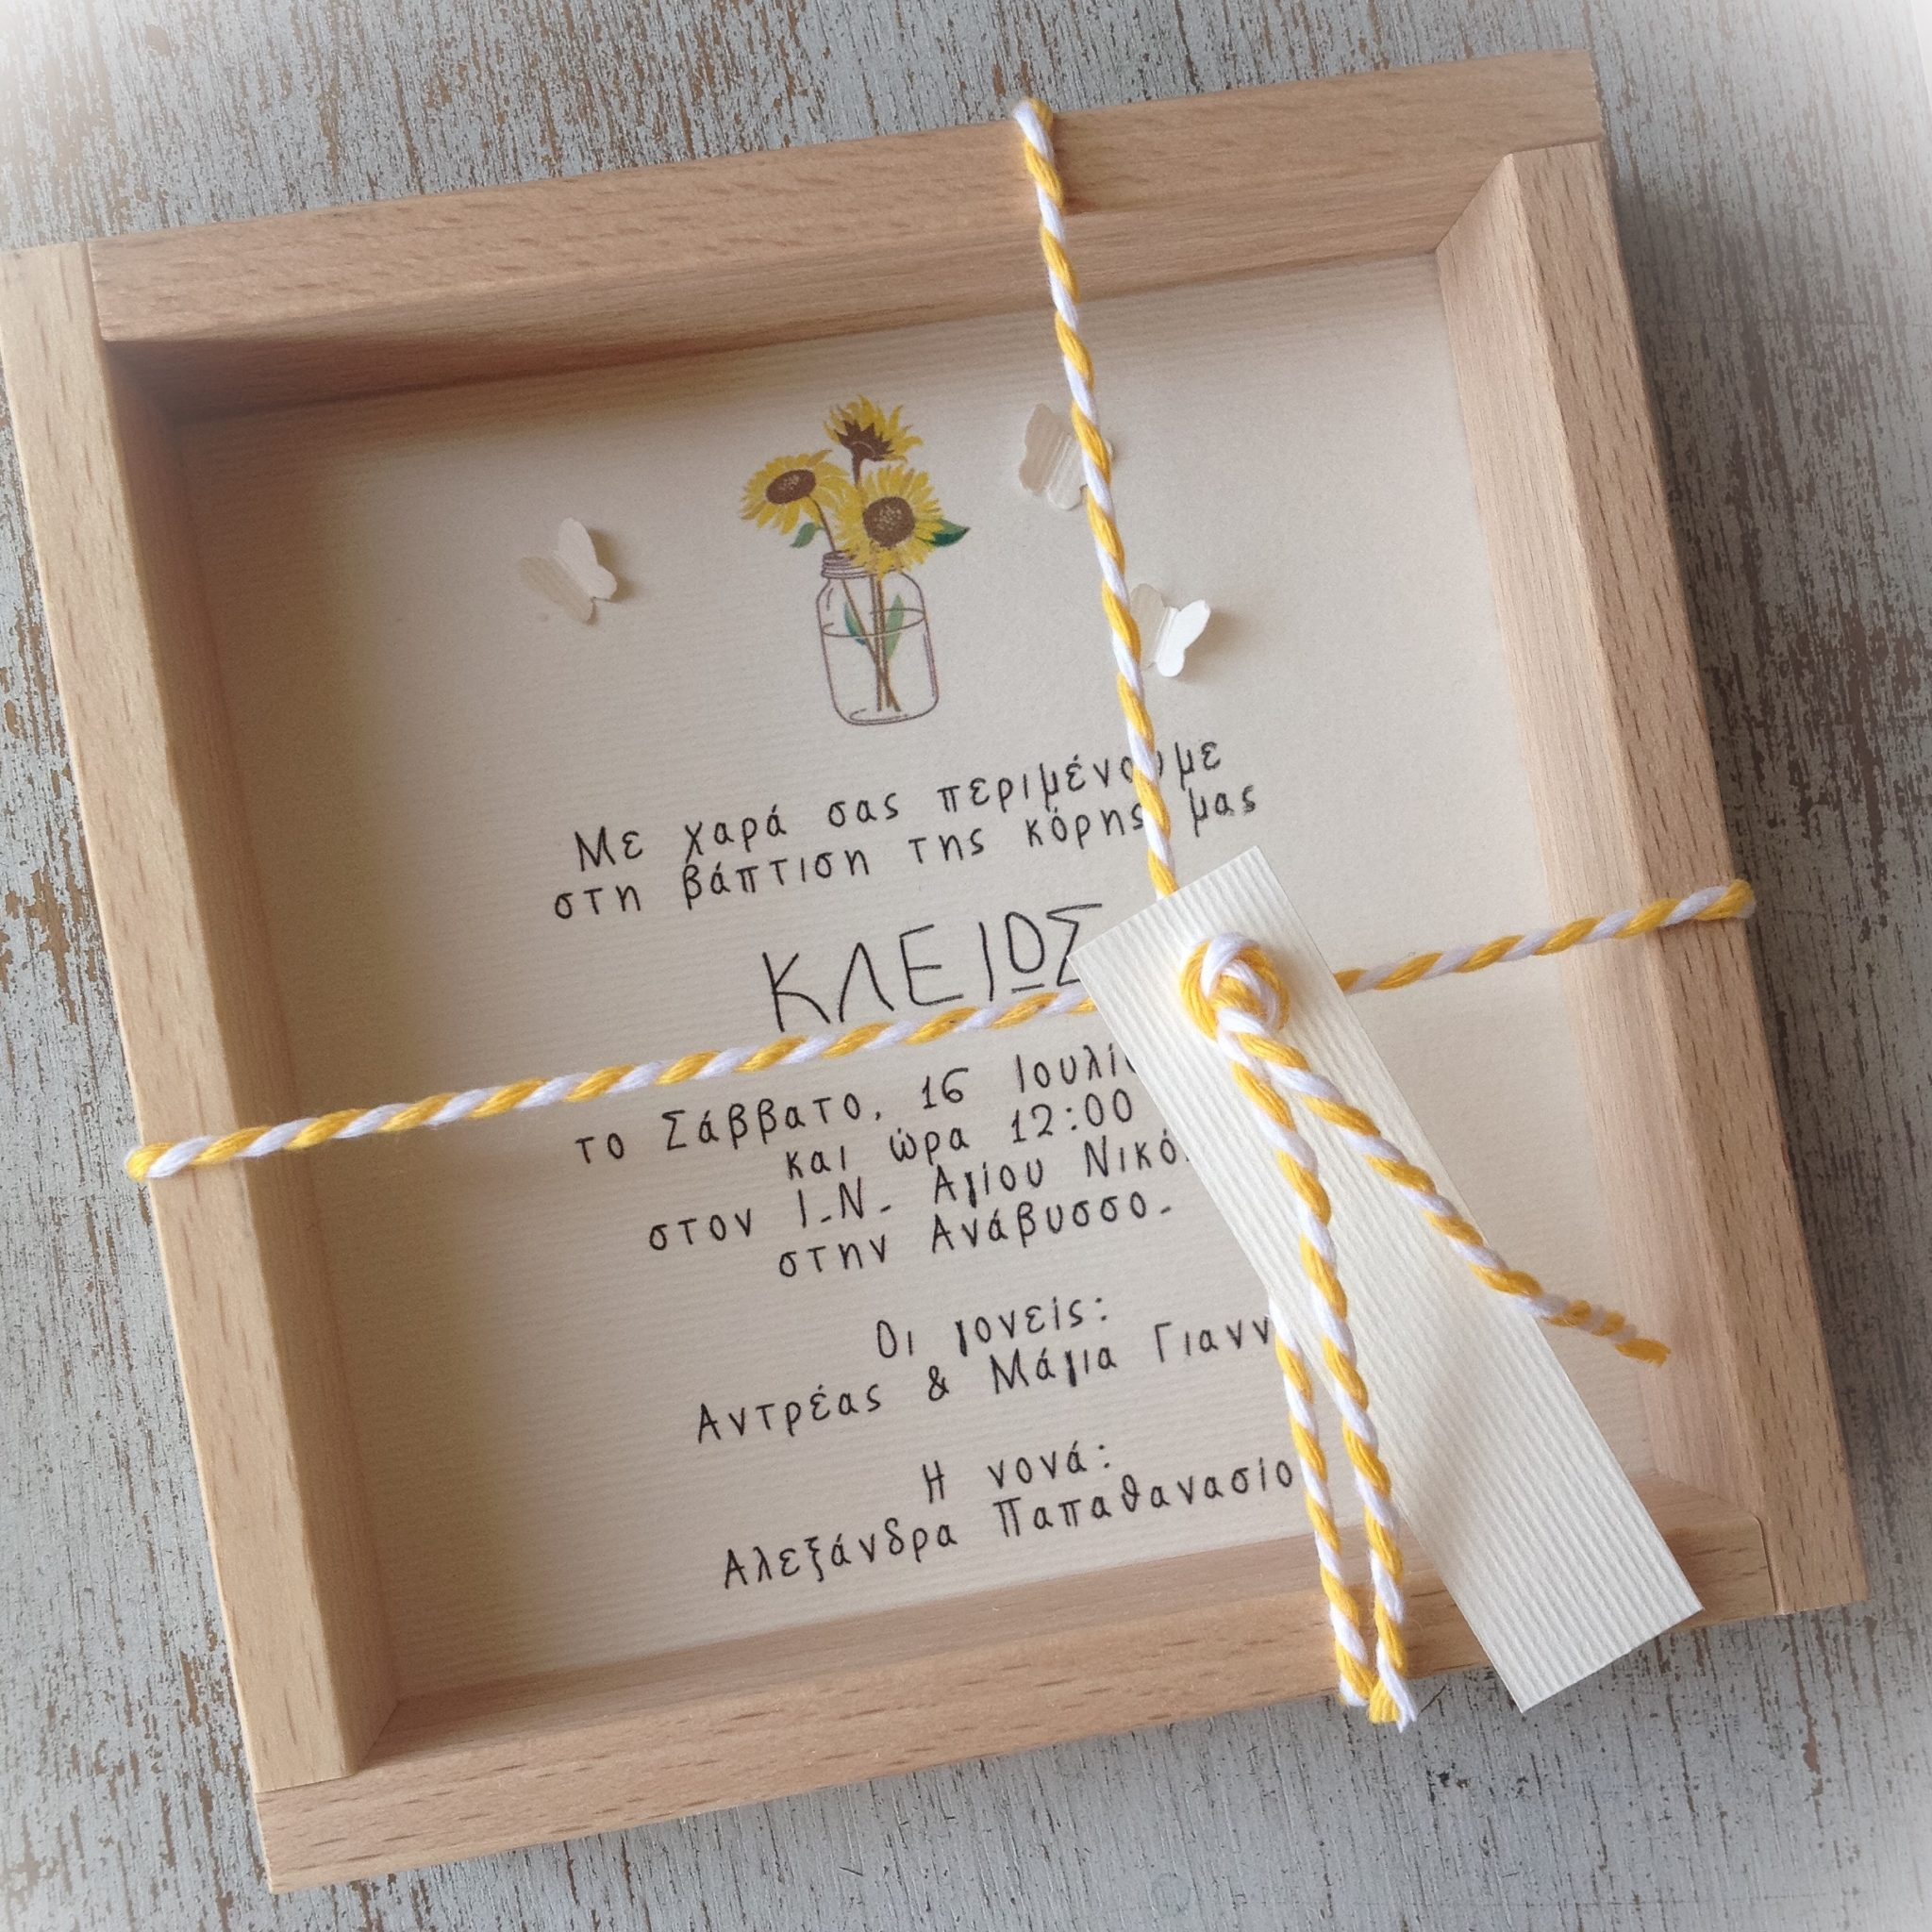 Sunflowers-baptism invitation proposal b